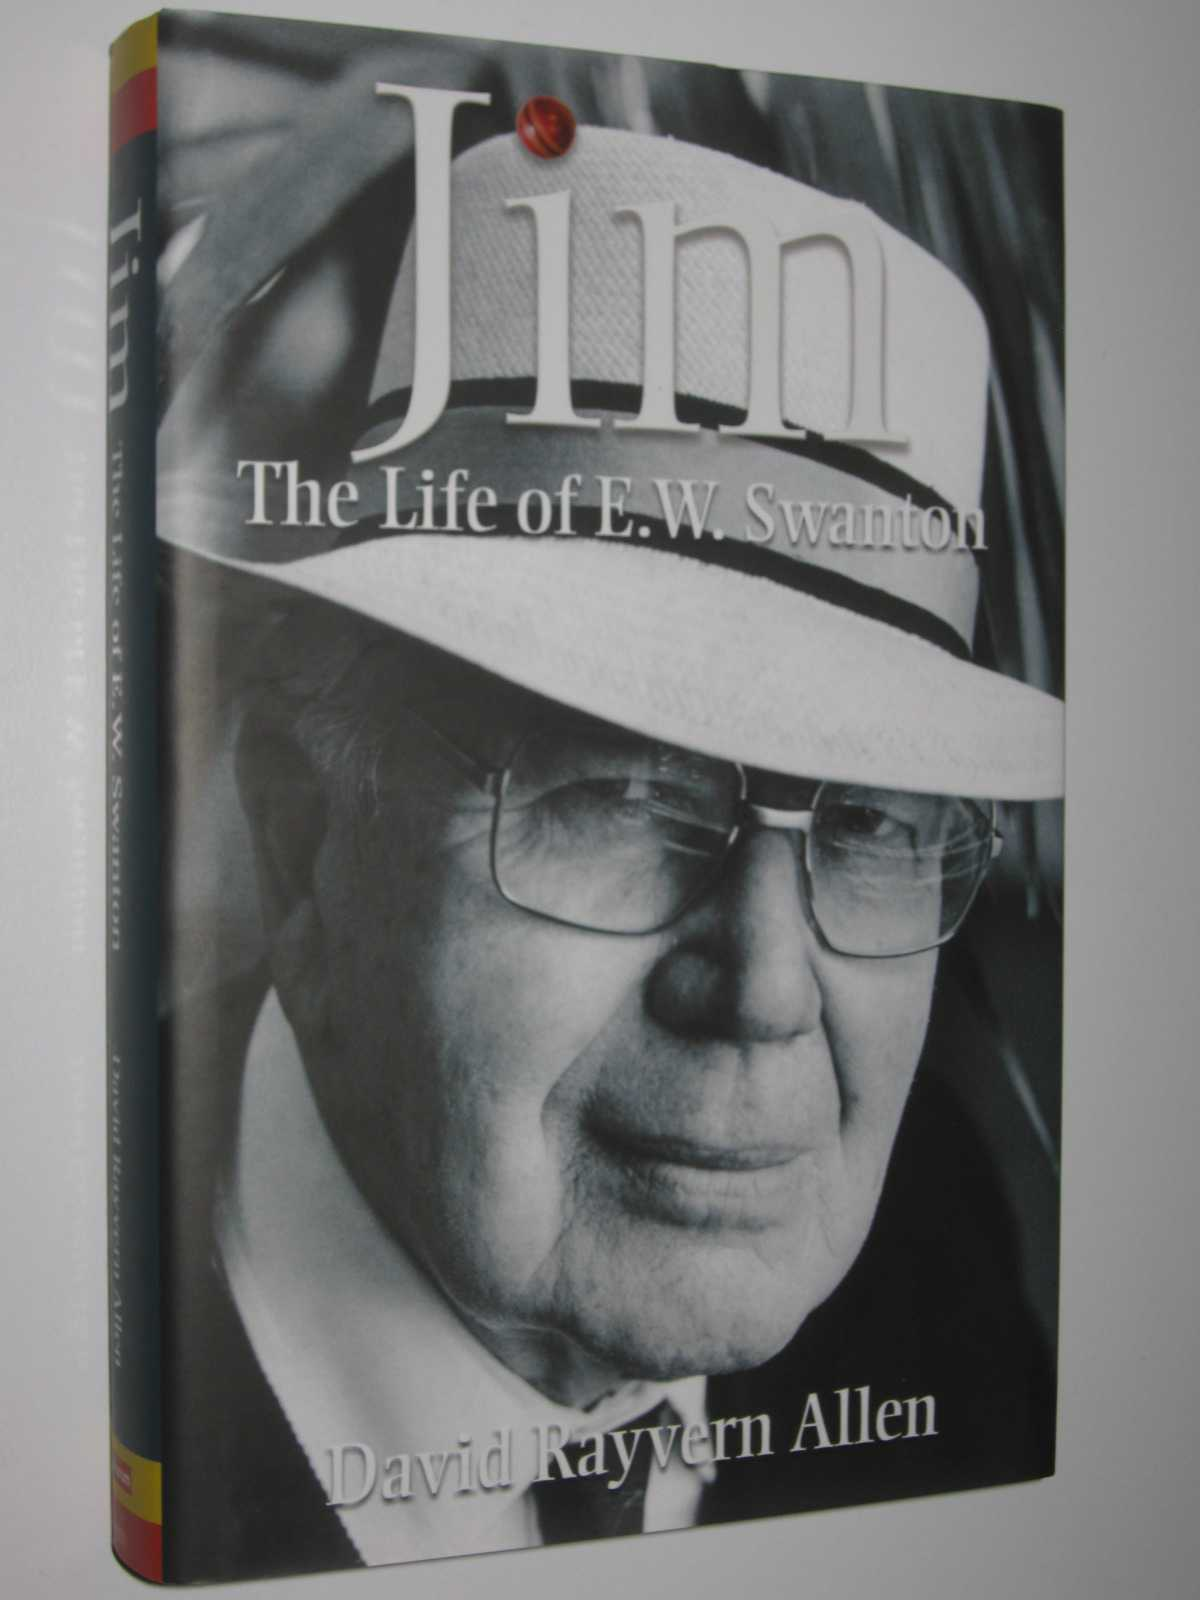 Image for Jim: The Life of E.W. Swanton